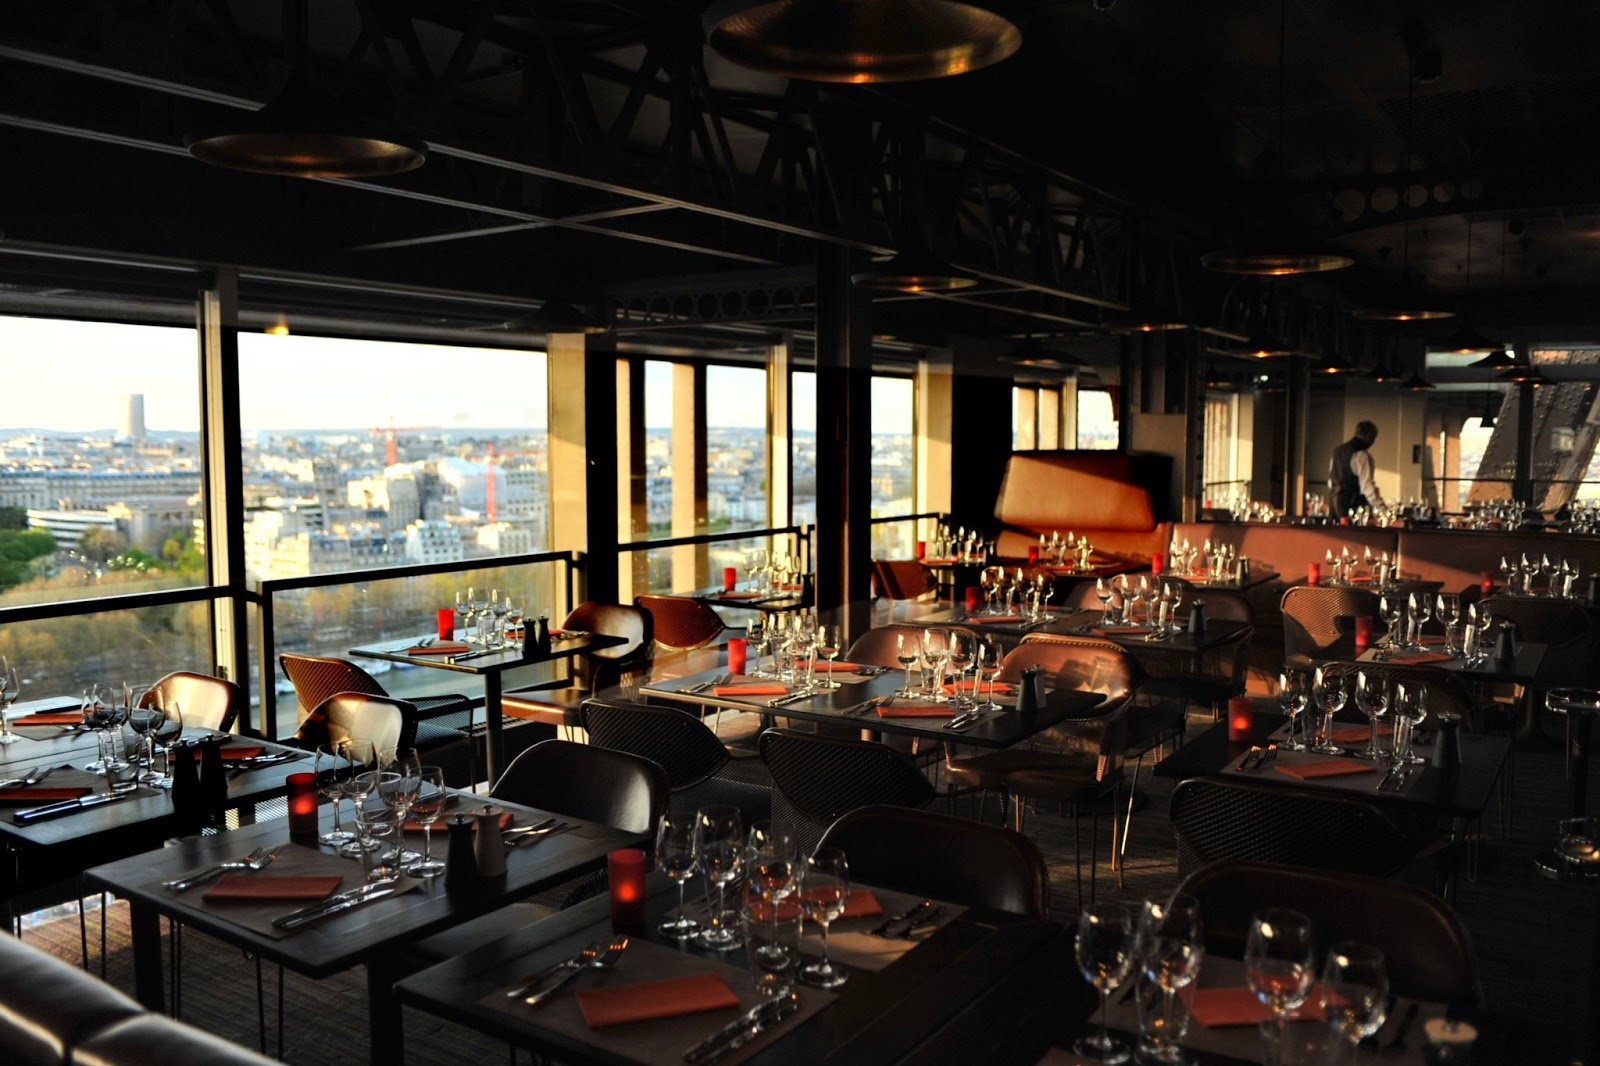 restaurant 58 tour eiffel pause gourmande avec vue panoramique sur paris. Black Bedroom Furniture Sets. Home Design Ideas